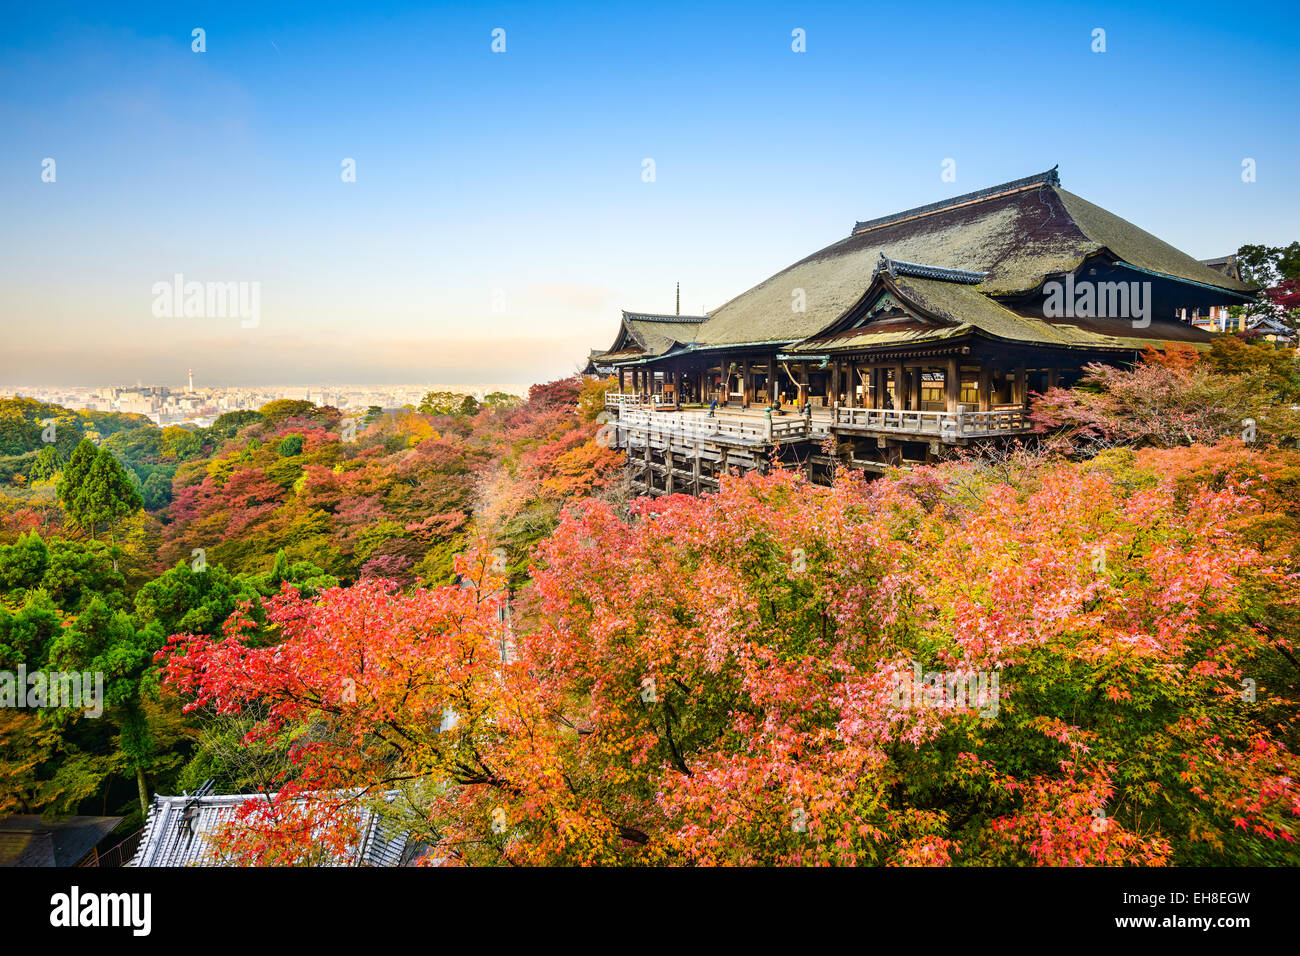 Kyoto, Japan at Kiyomizu-dera shrine in the autumn season. Stock Photo